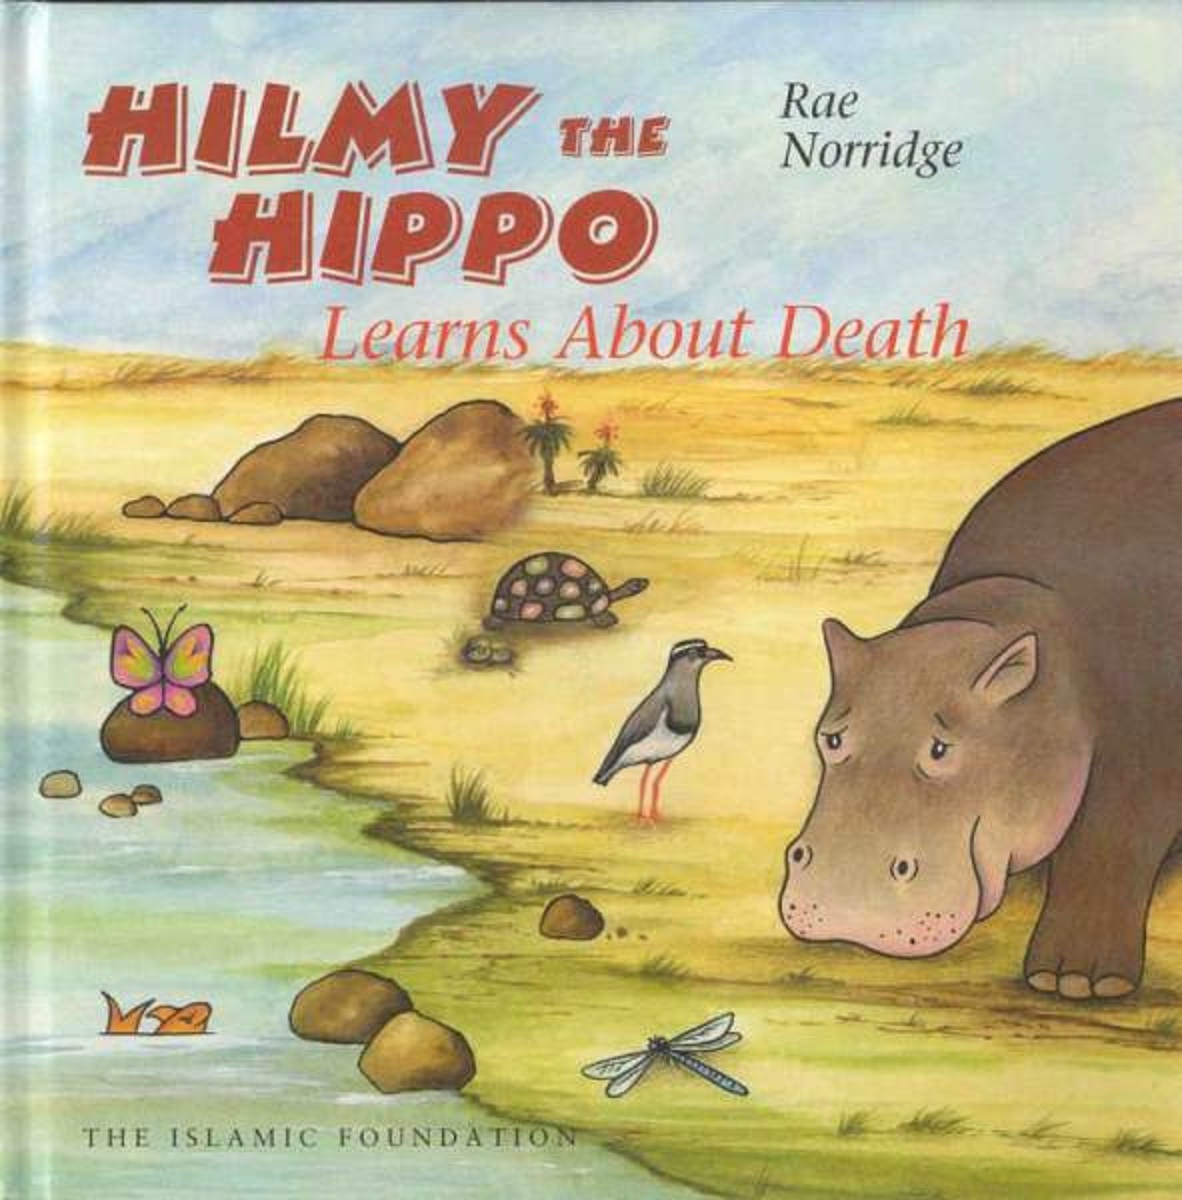 Hilmy the Hippo Learns About Death By Rae Norridge